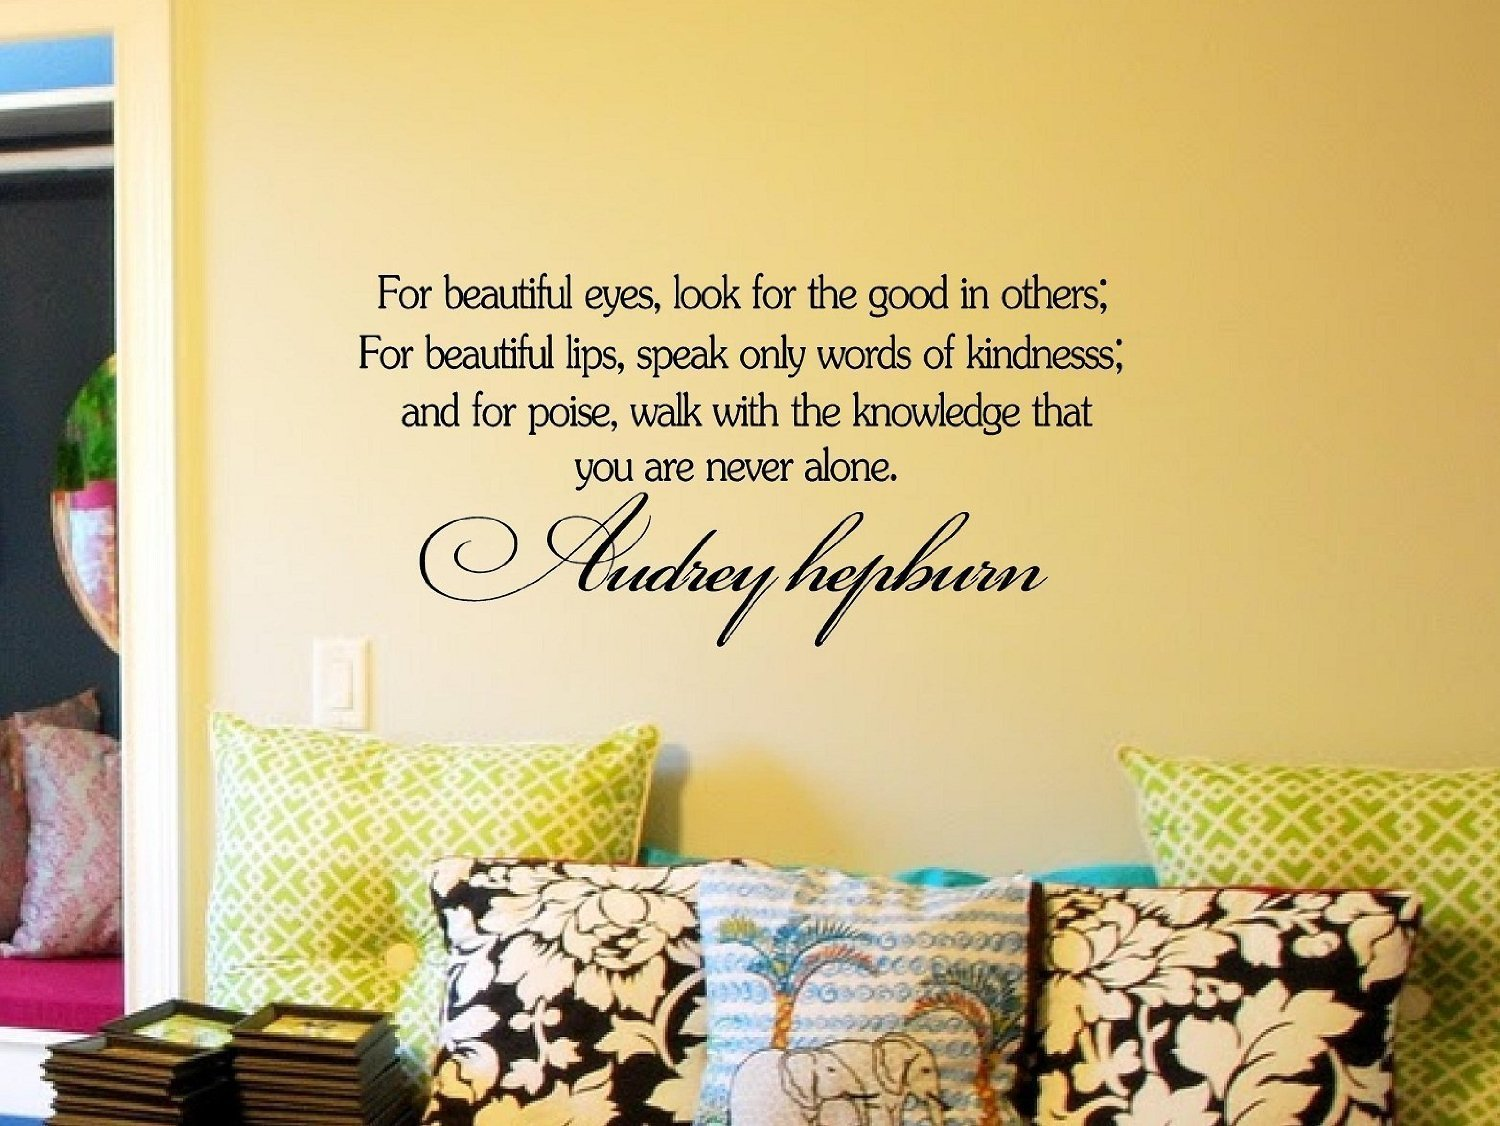 Decalgeek Audrey Hepburn Inspirational Quotes Vinyl Wall Art Decal ...